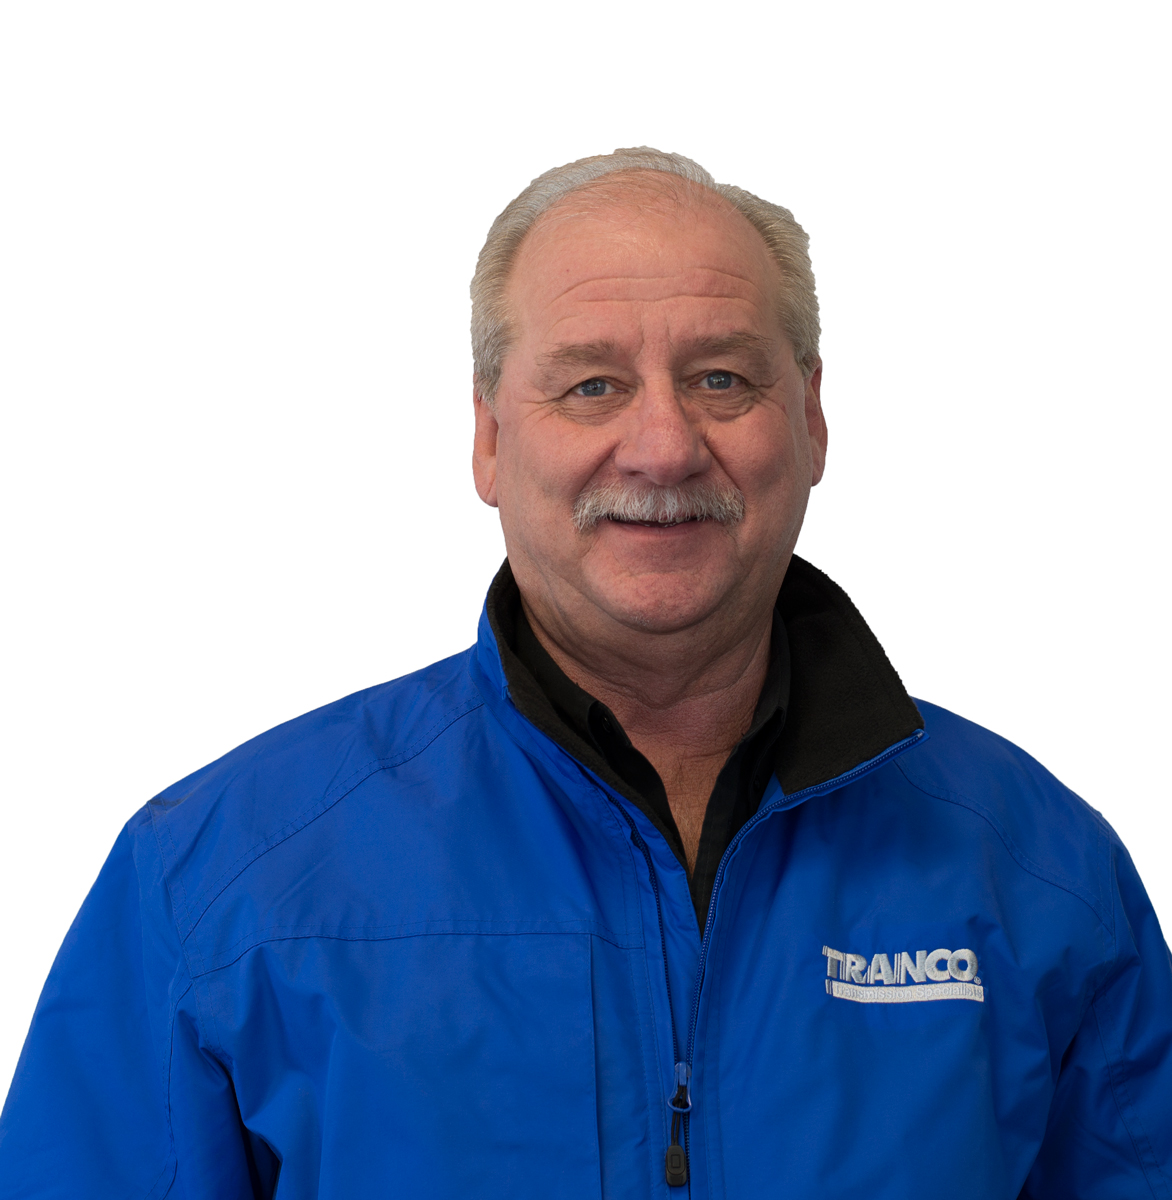 Ray Peterek owner of Tranco Transmission